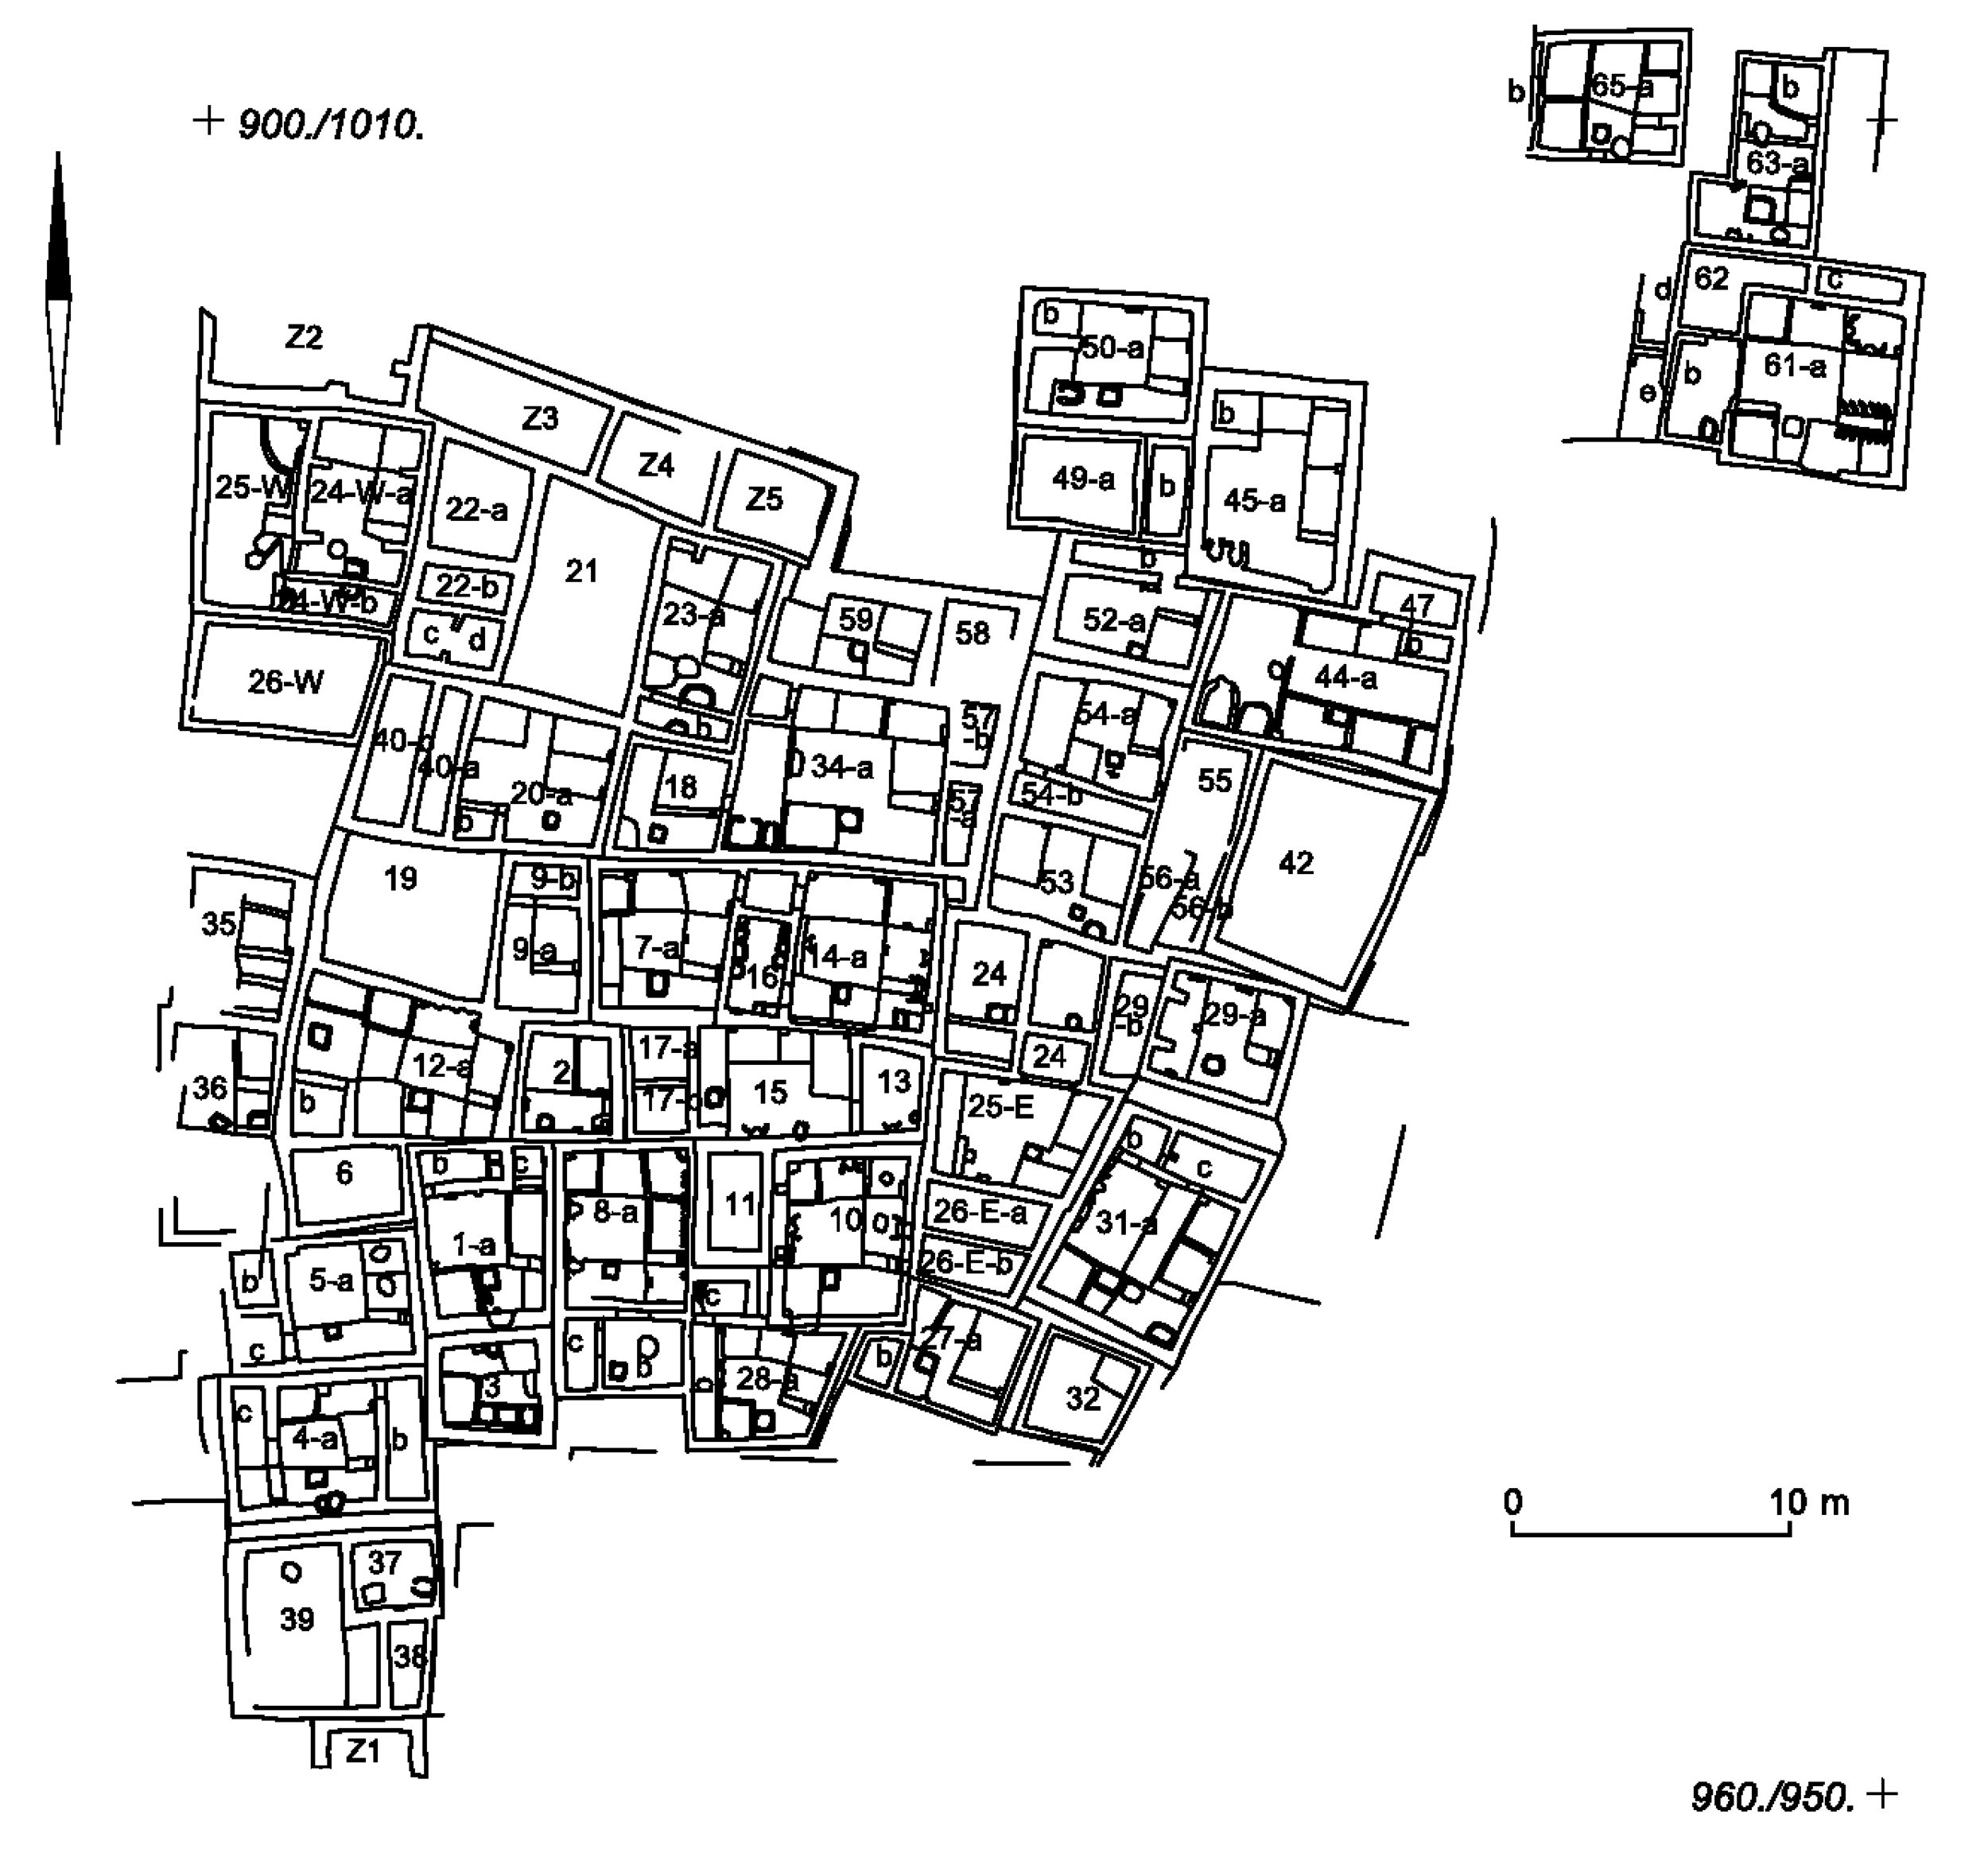 Perhaps the earliest city, Catal Hoyuk (During & Marciniak 2006:177)